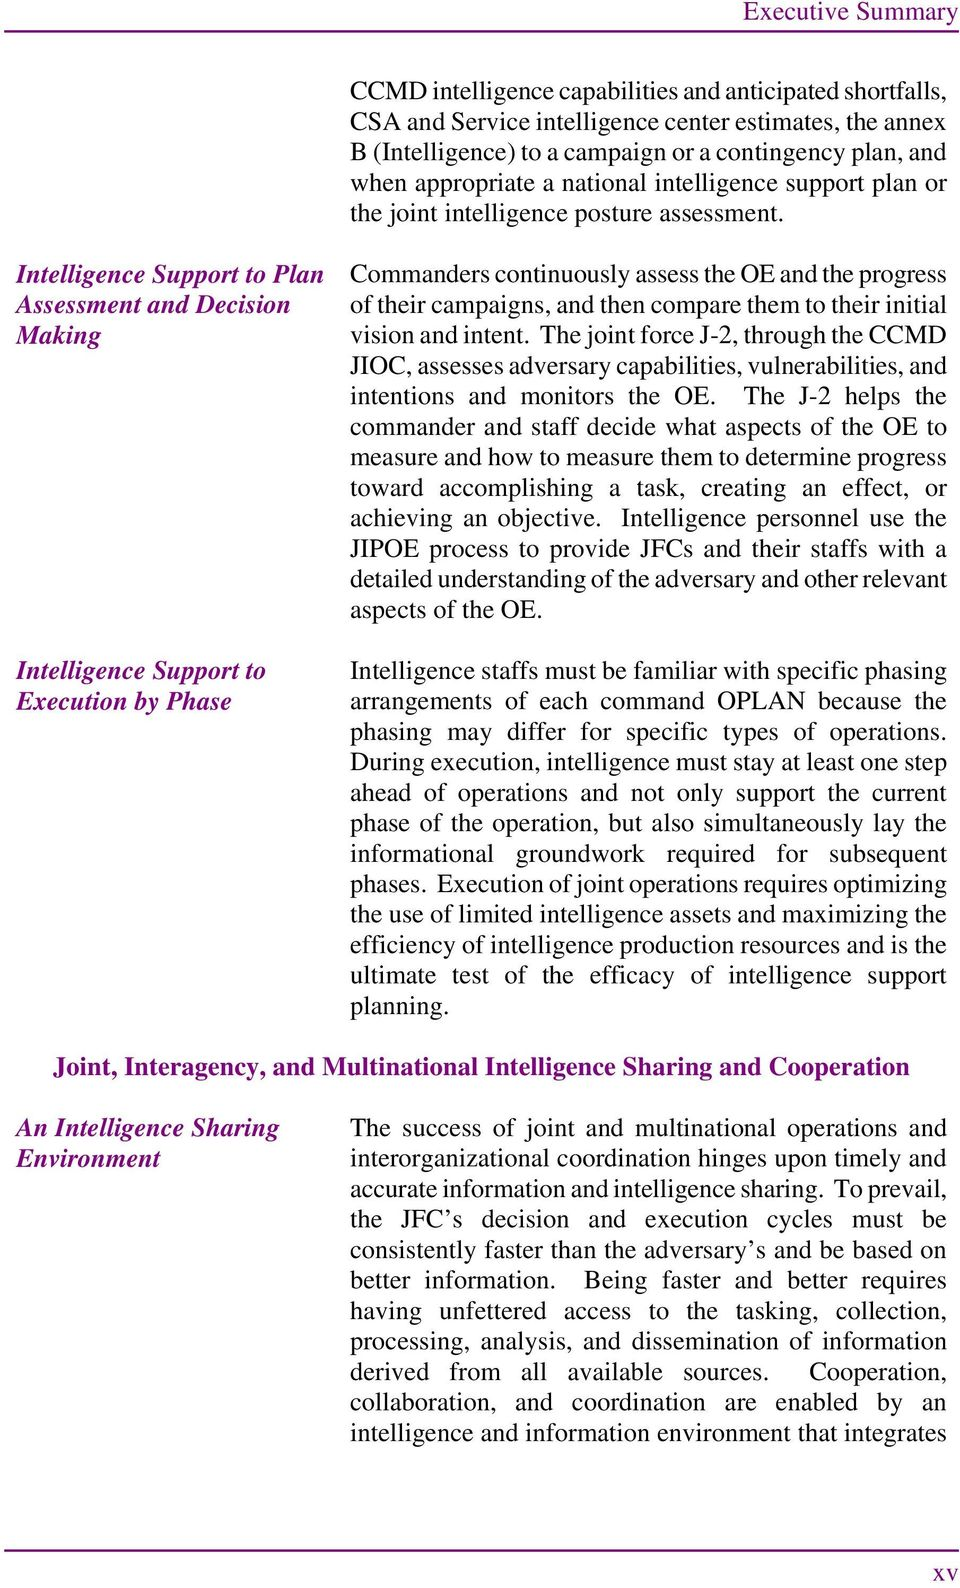 Intelligence Support to Plan Assessment and Decision Making Intelligence Support to Execution by Phase Commanders continuously assess the OE and the progress of their campaigns, and then compare them